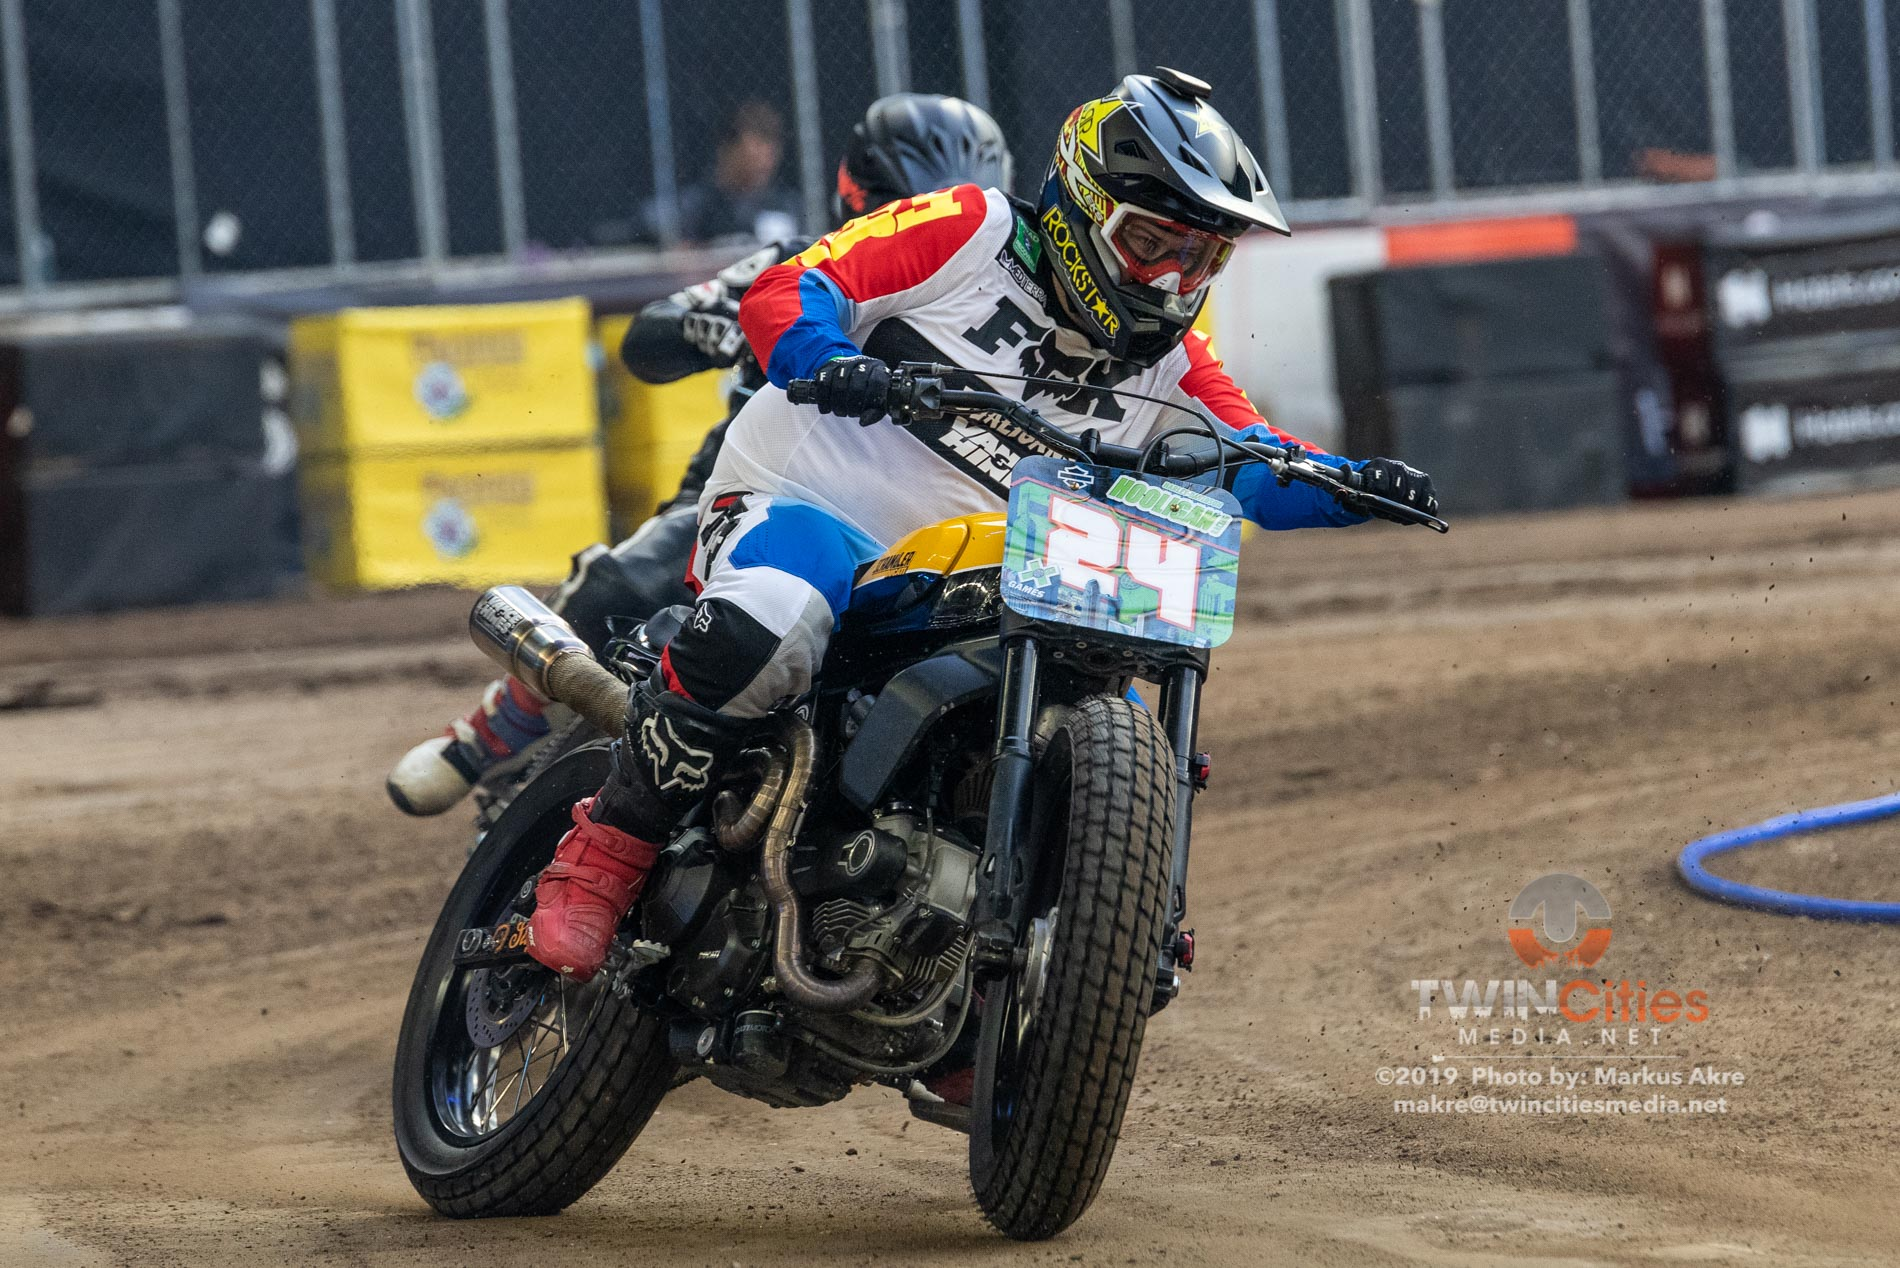 2019-X-Games-Day-4-Harley-Davidson-Hooligan-Racing-3